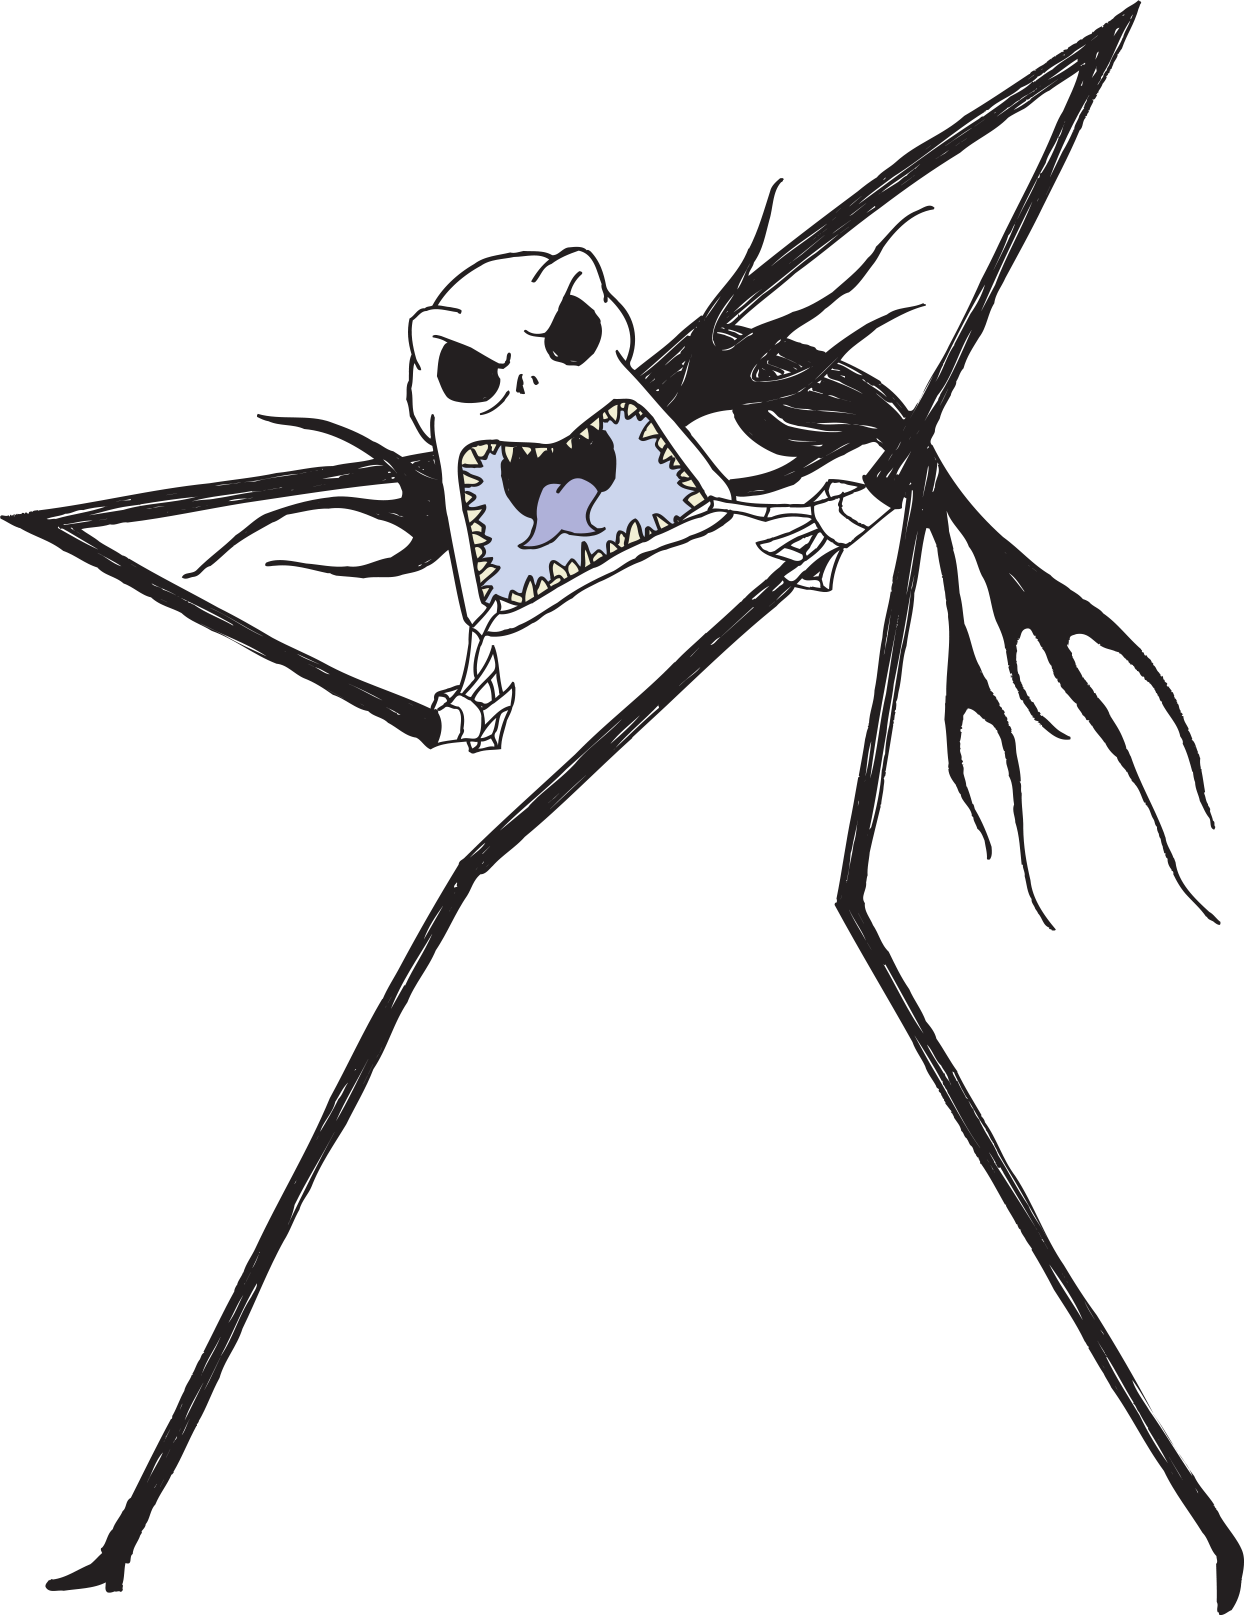 Nightmare before christmas clipart black and white graphic download Nightmare Before Christmas Sticker Book | Disney LOL graphic download